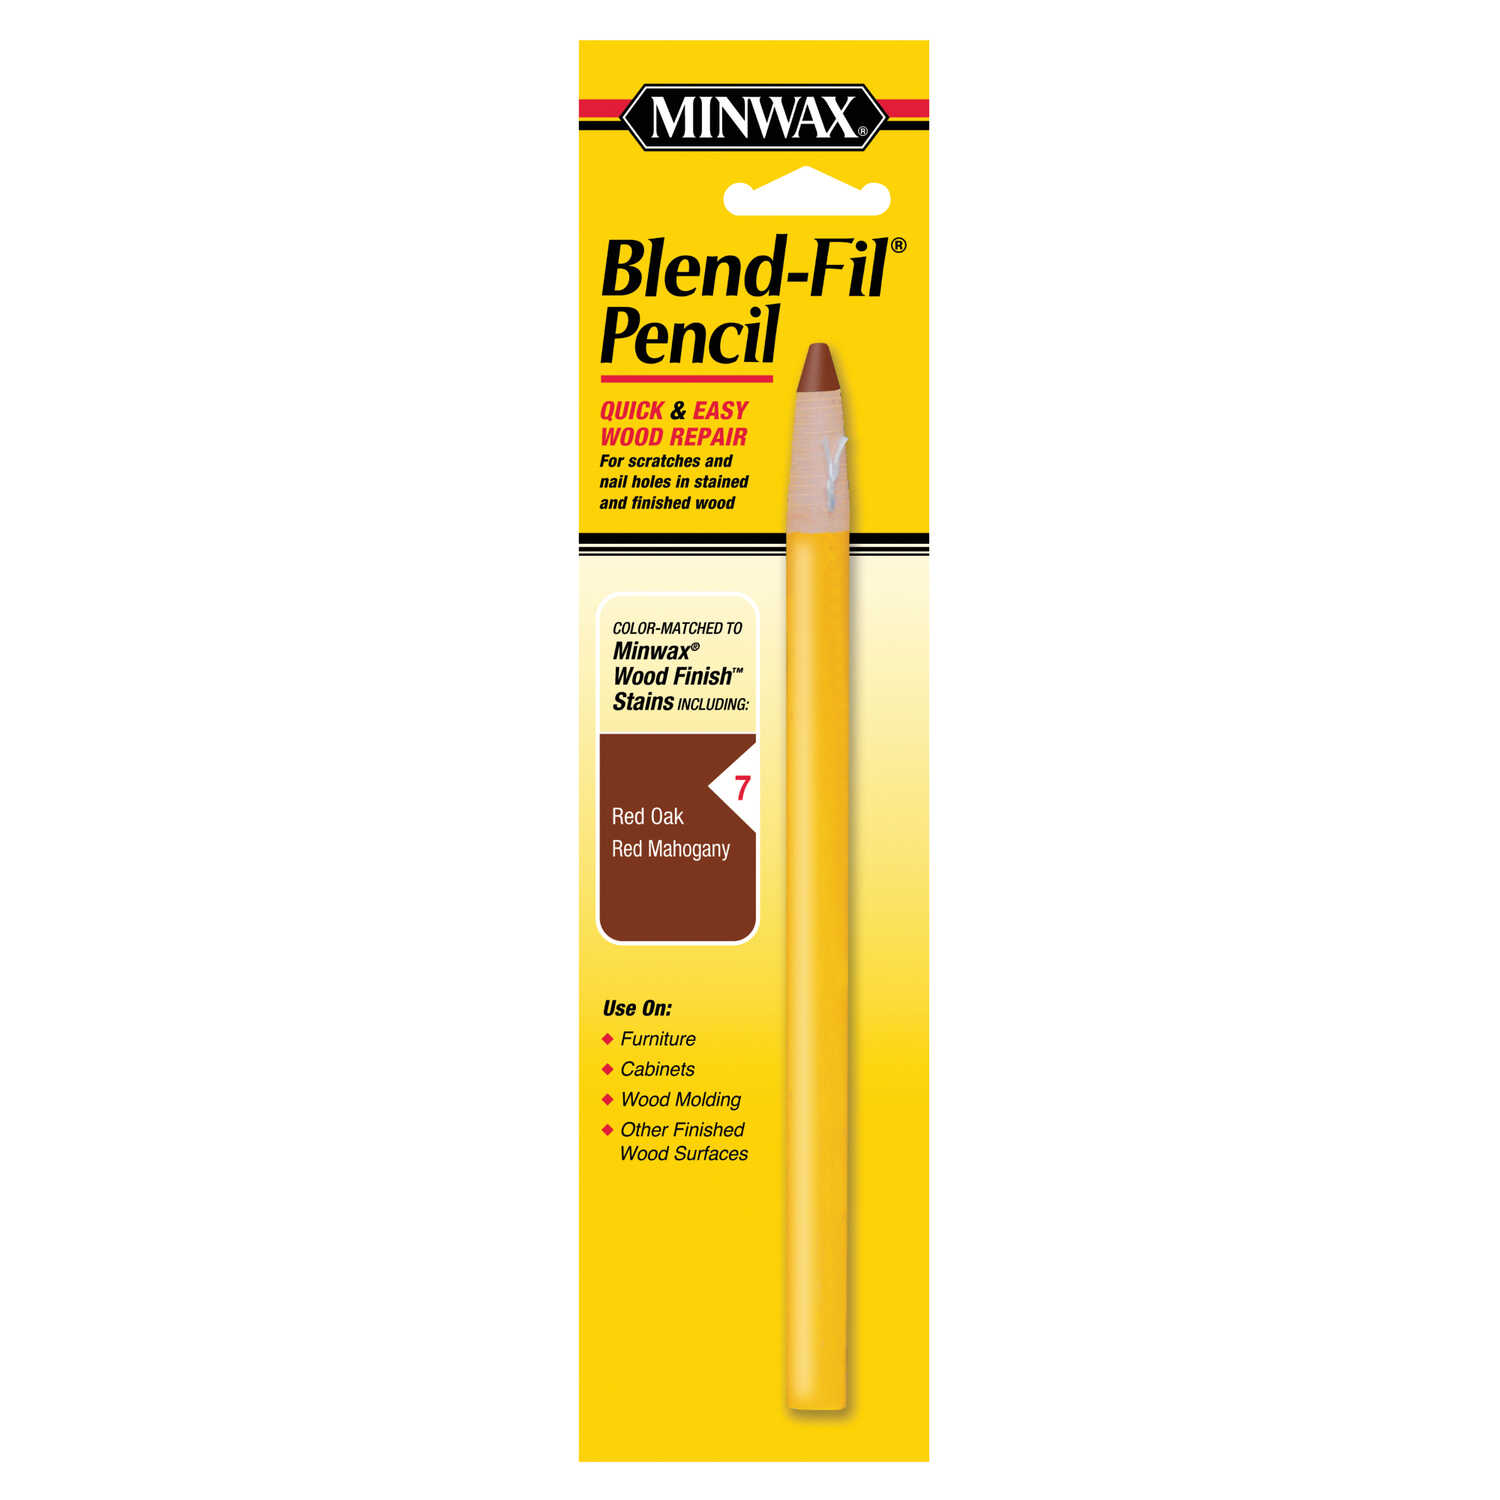 Minwax  Blend-Fil No. 7  Wood Pencil  1 oz. Red Mahogany, Red Oak